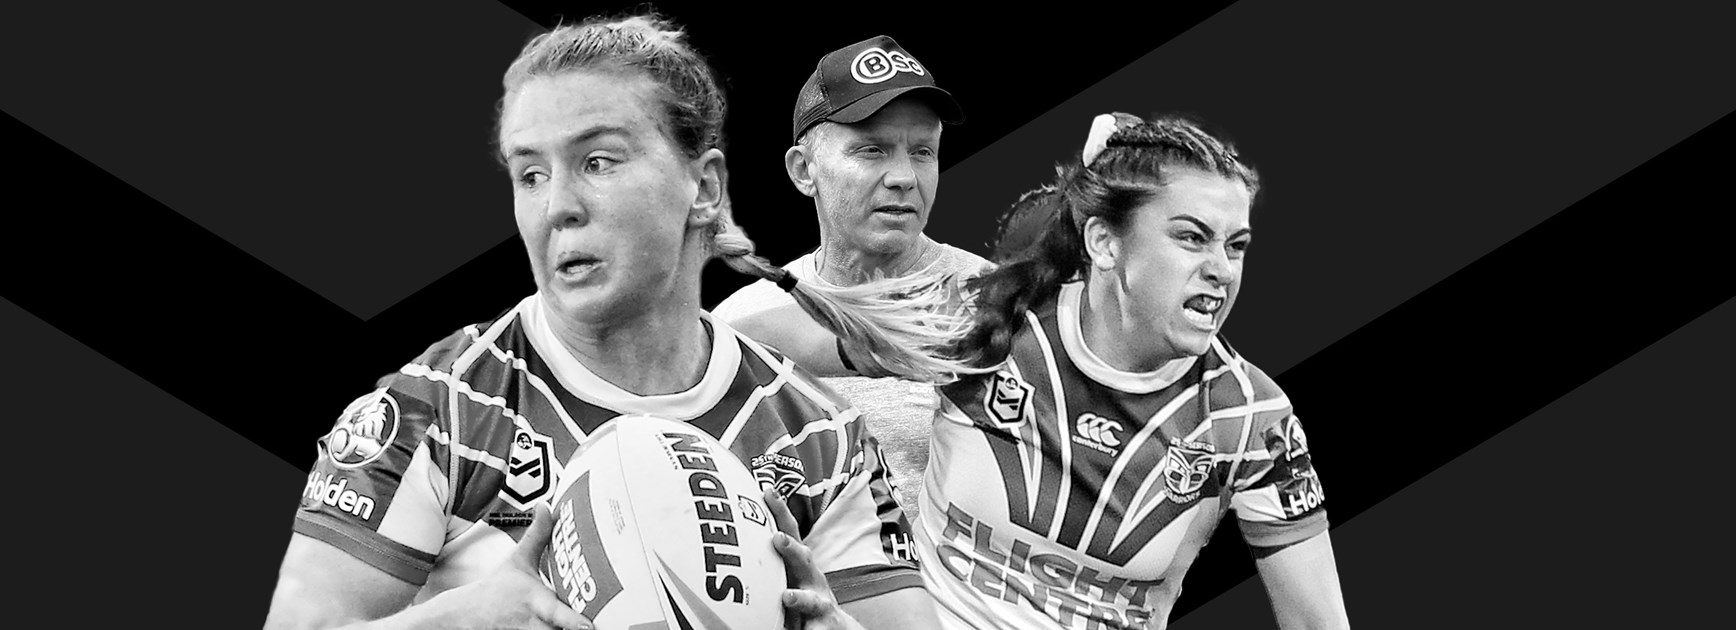 NRLW Warriors season preview: Looking to defy the odds